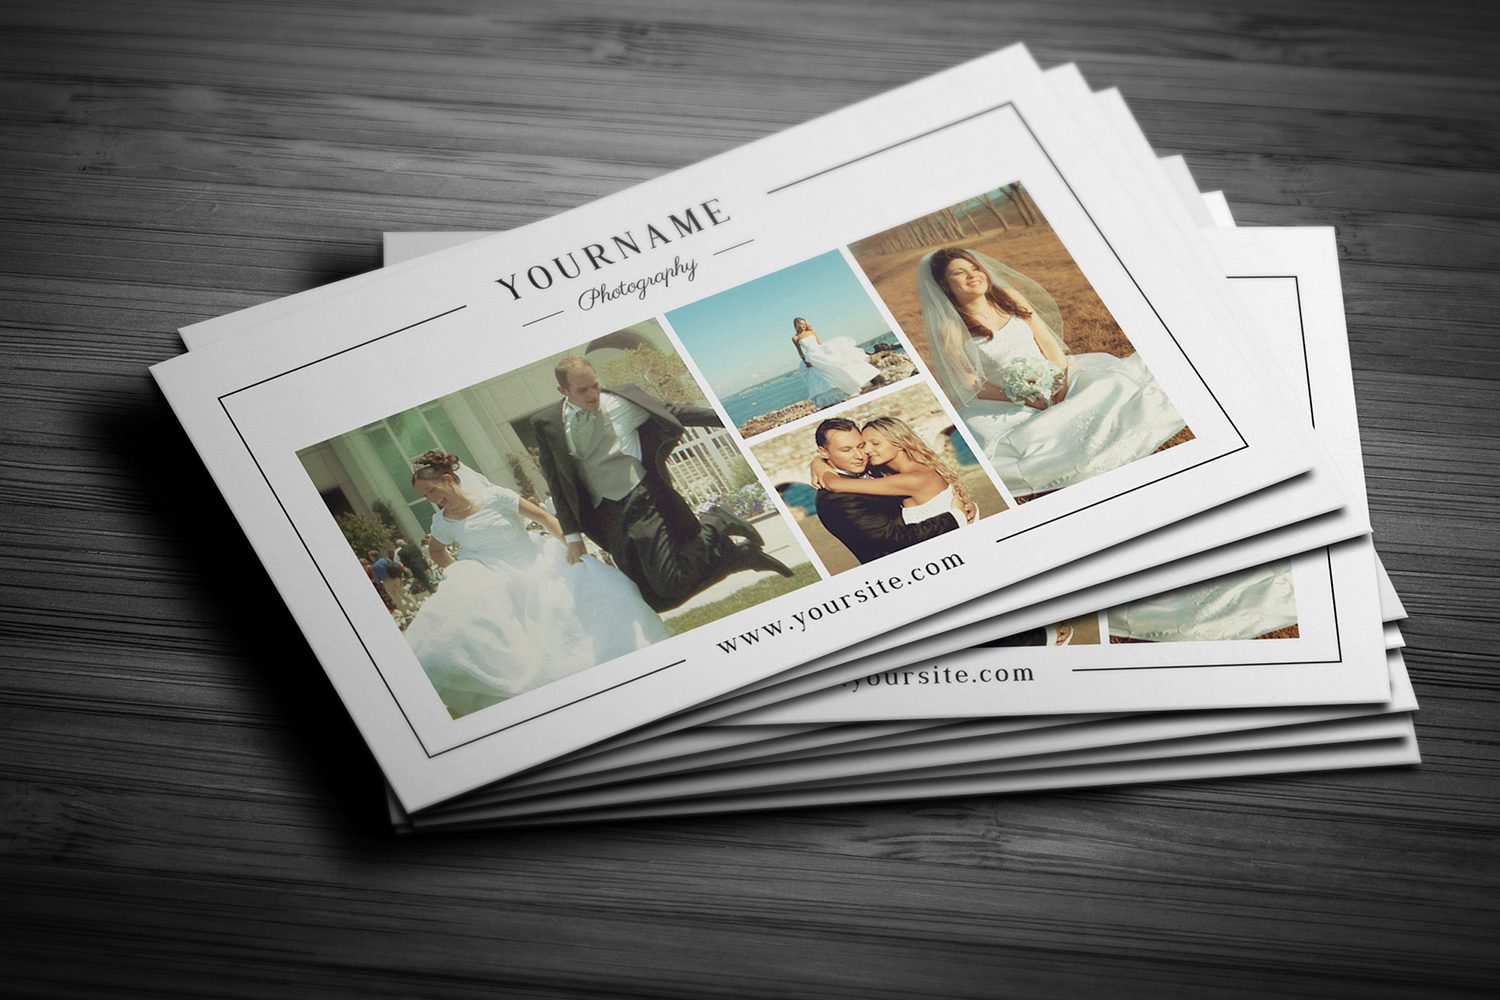 Minimal Wedding Photography Business Card  example image 4